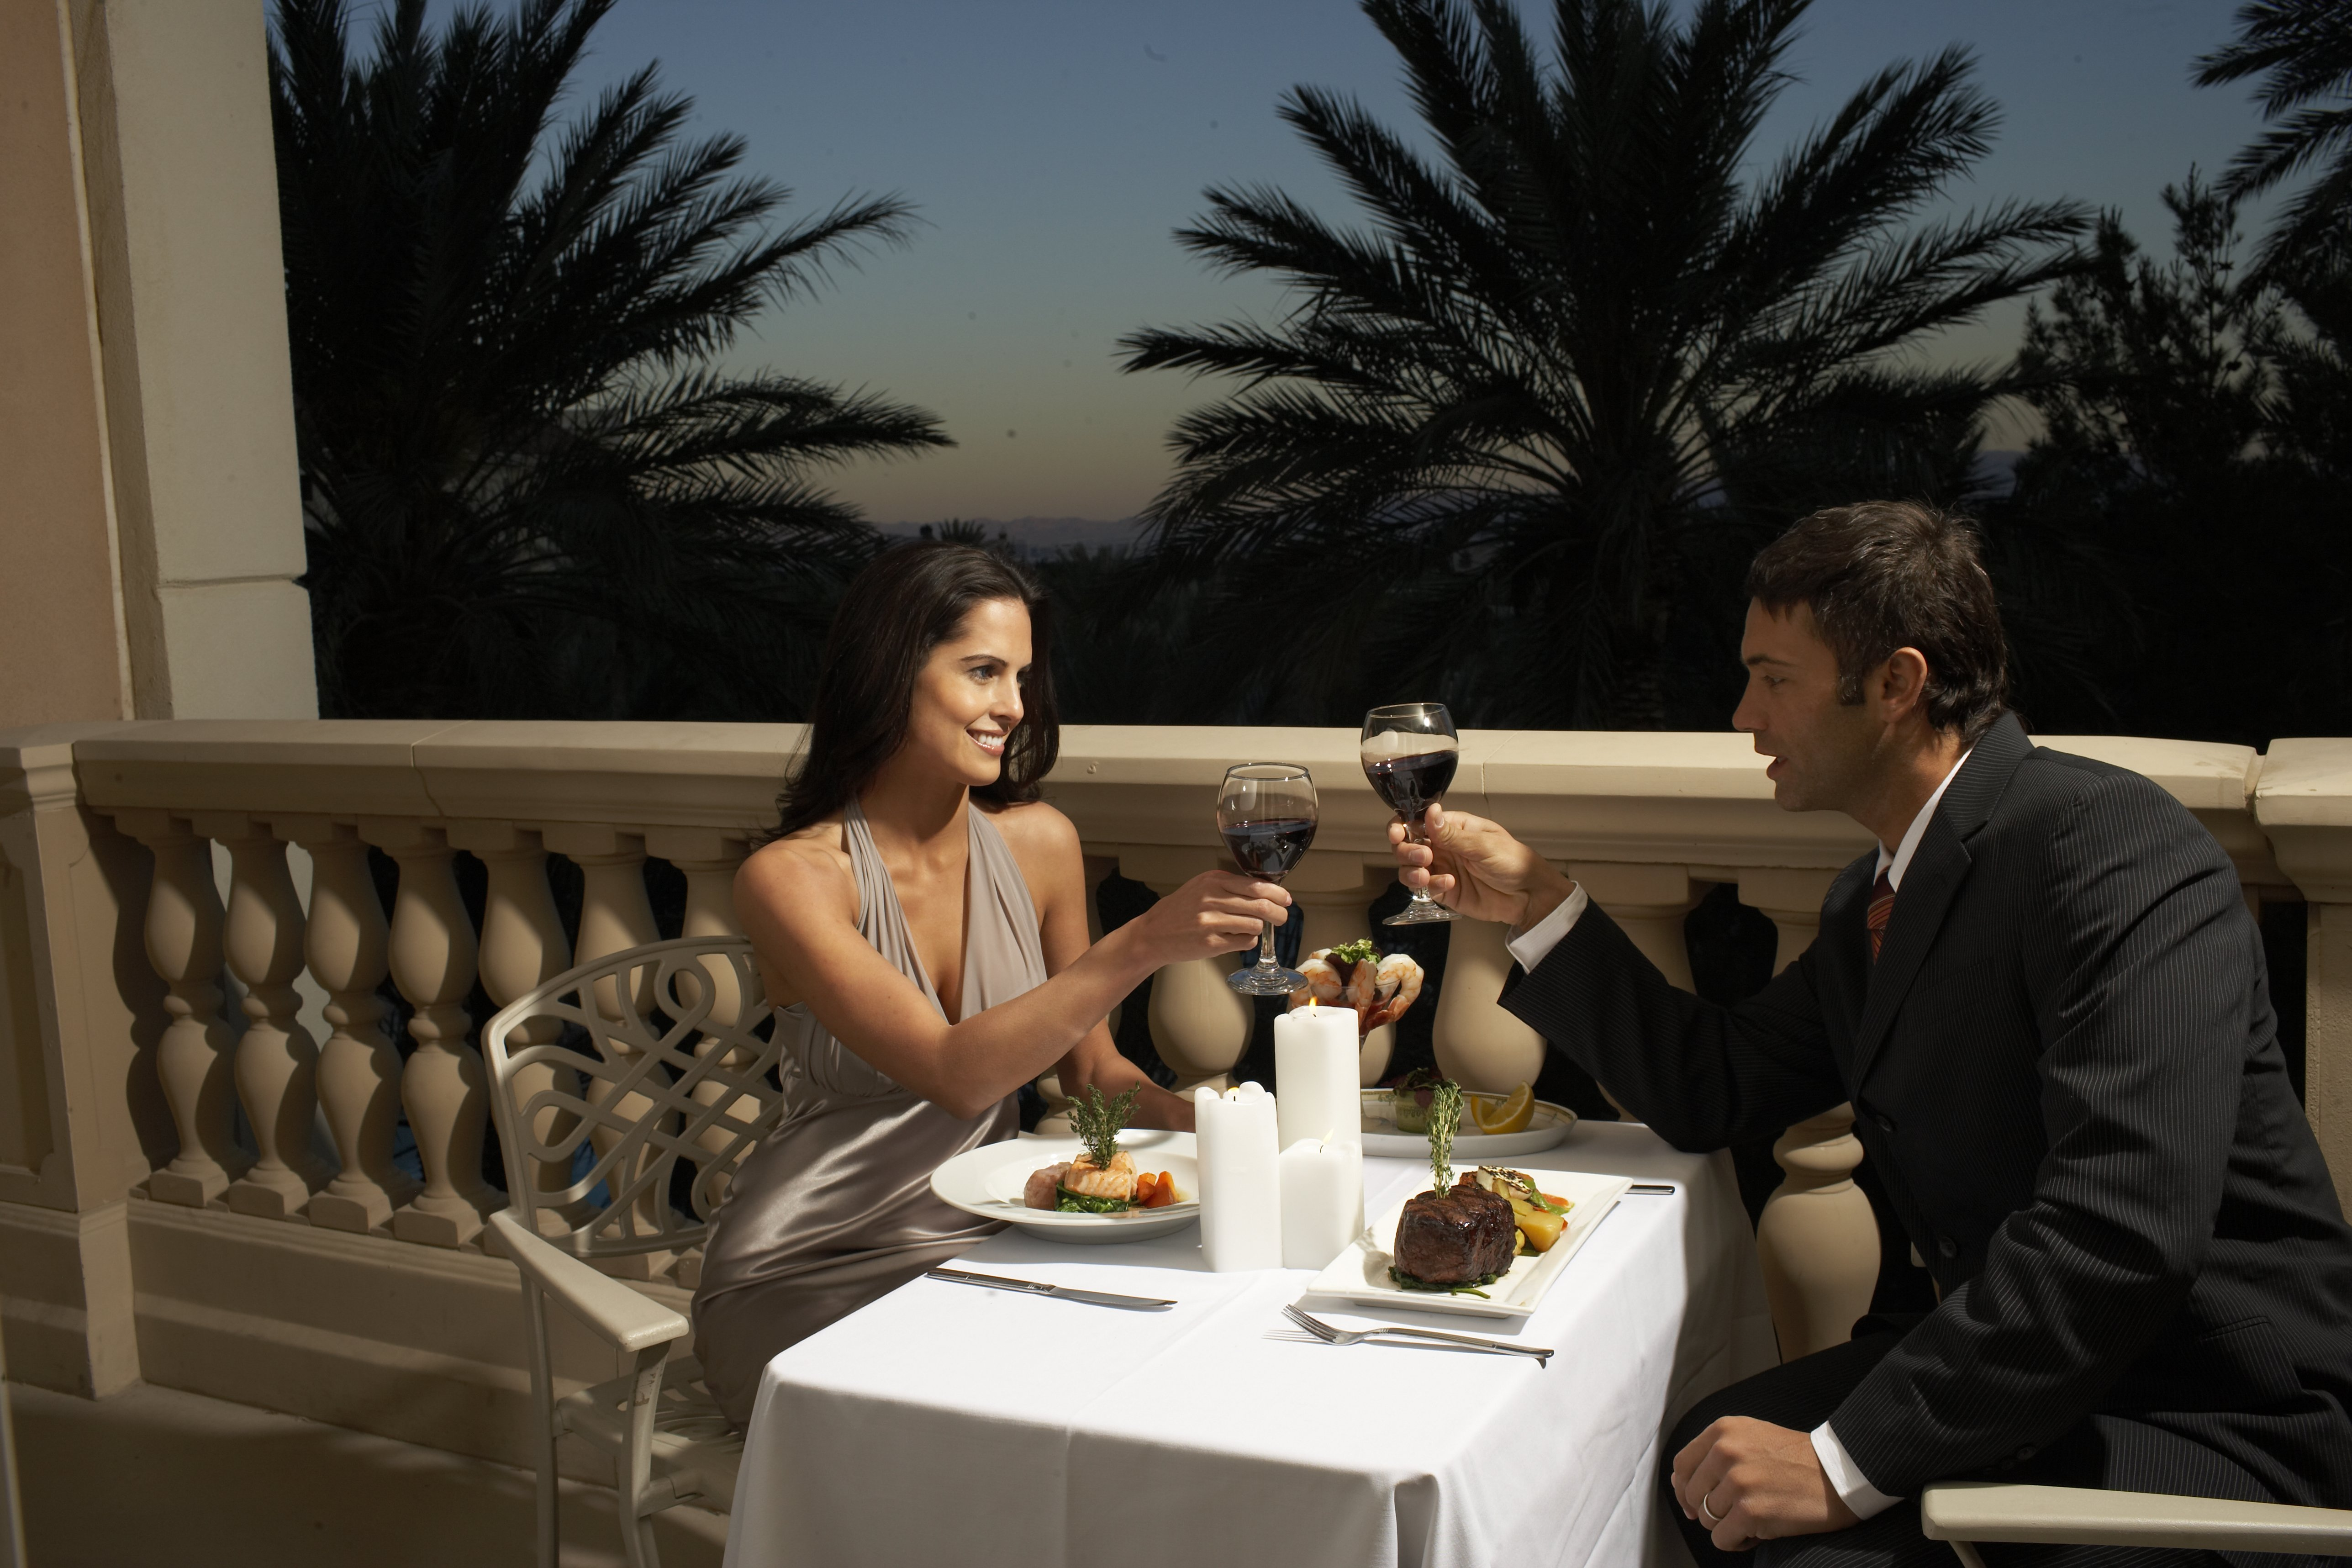 Photo of couple in evening wear having dinner on balcony, toasting with red wine | Photo: Getty Images